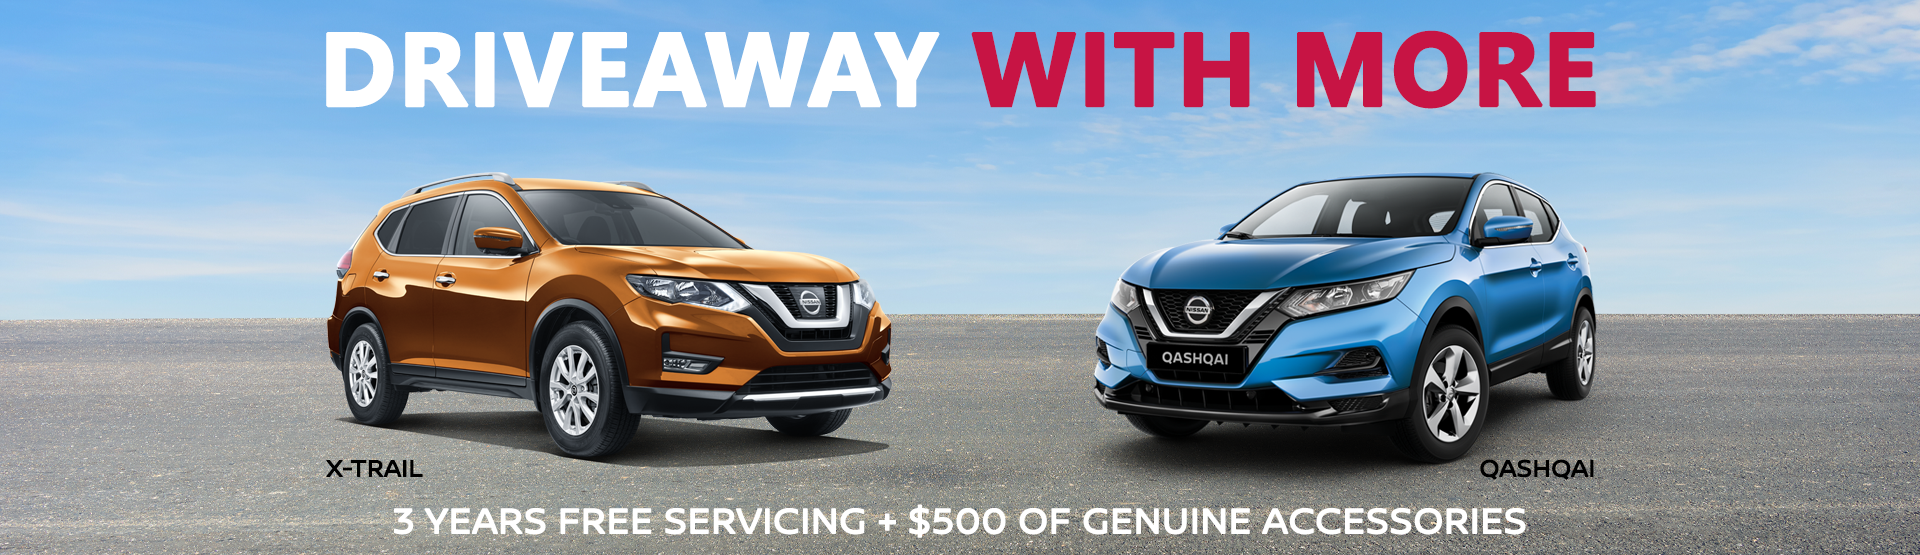 North Jacklin Nissan Local Offers